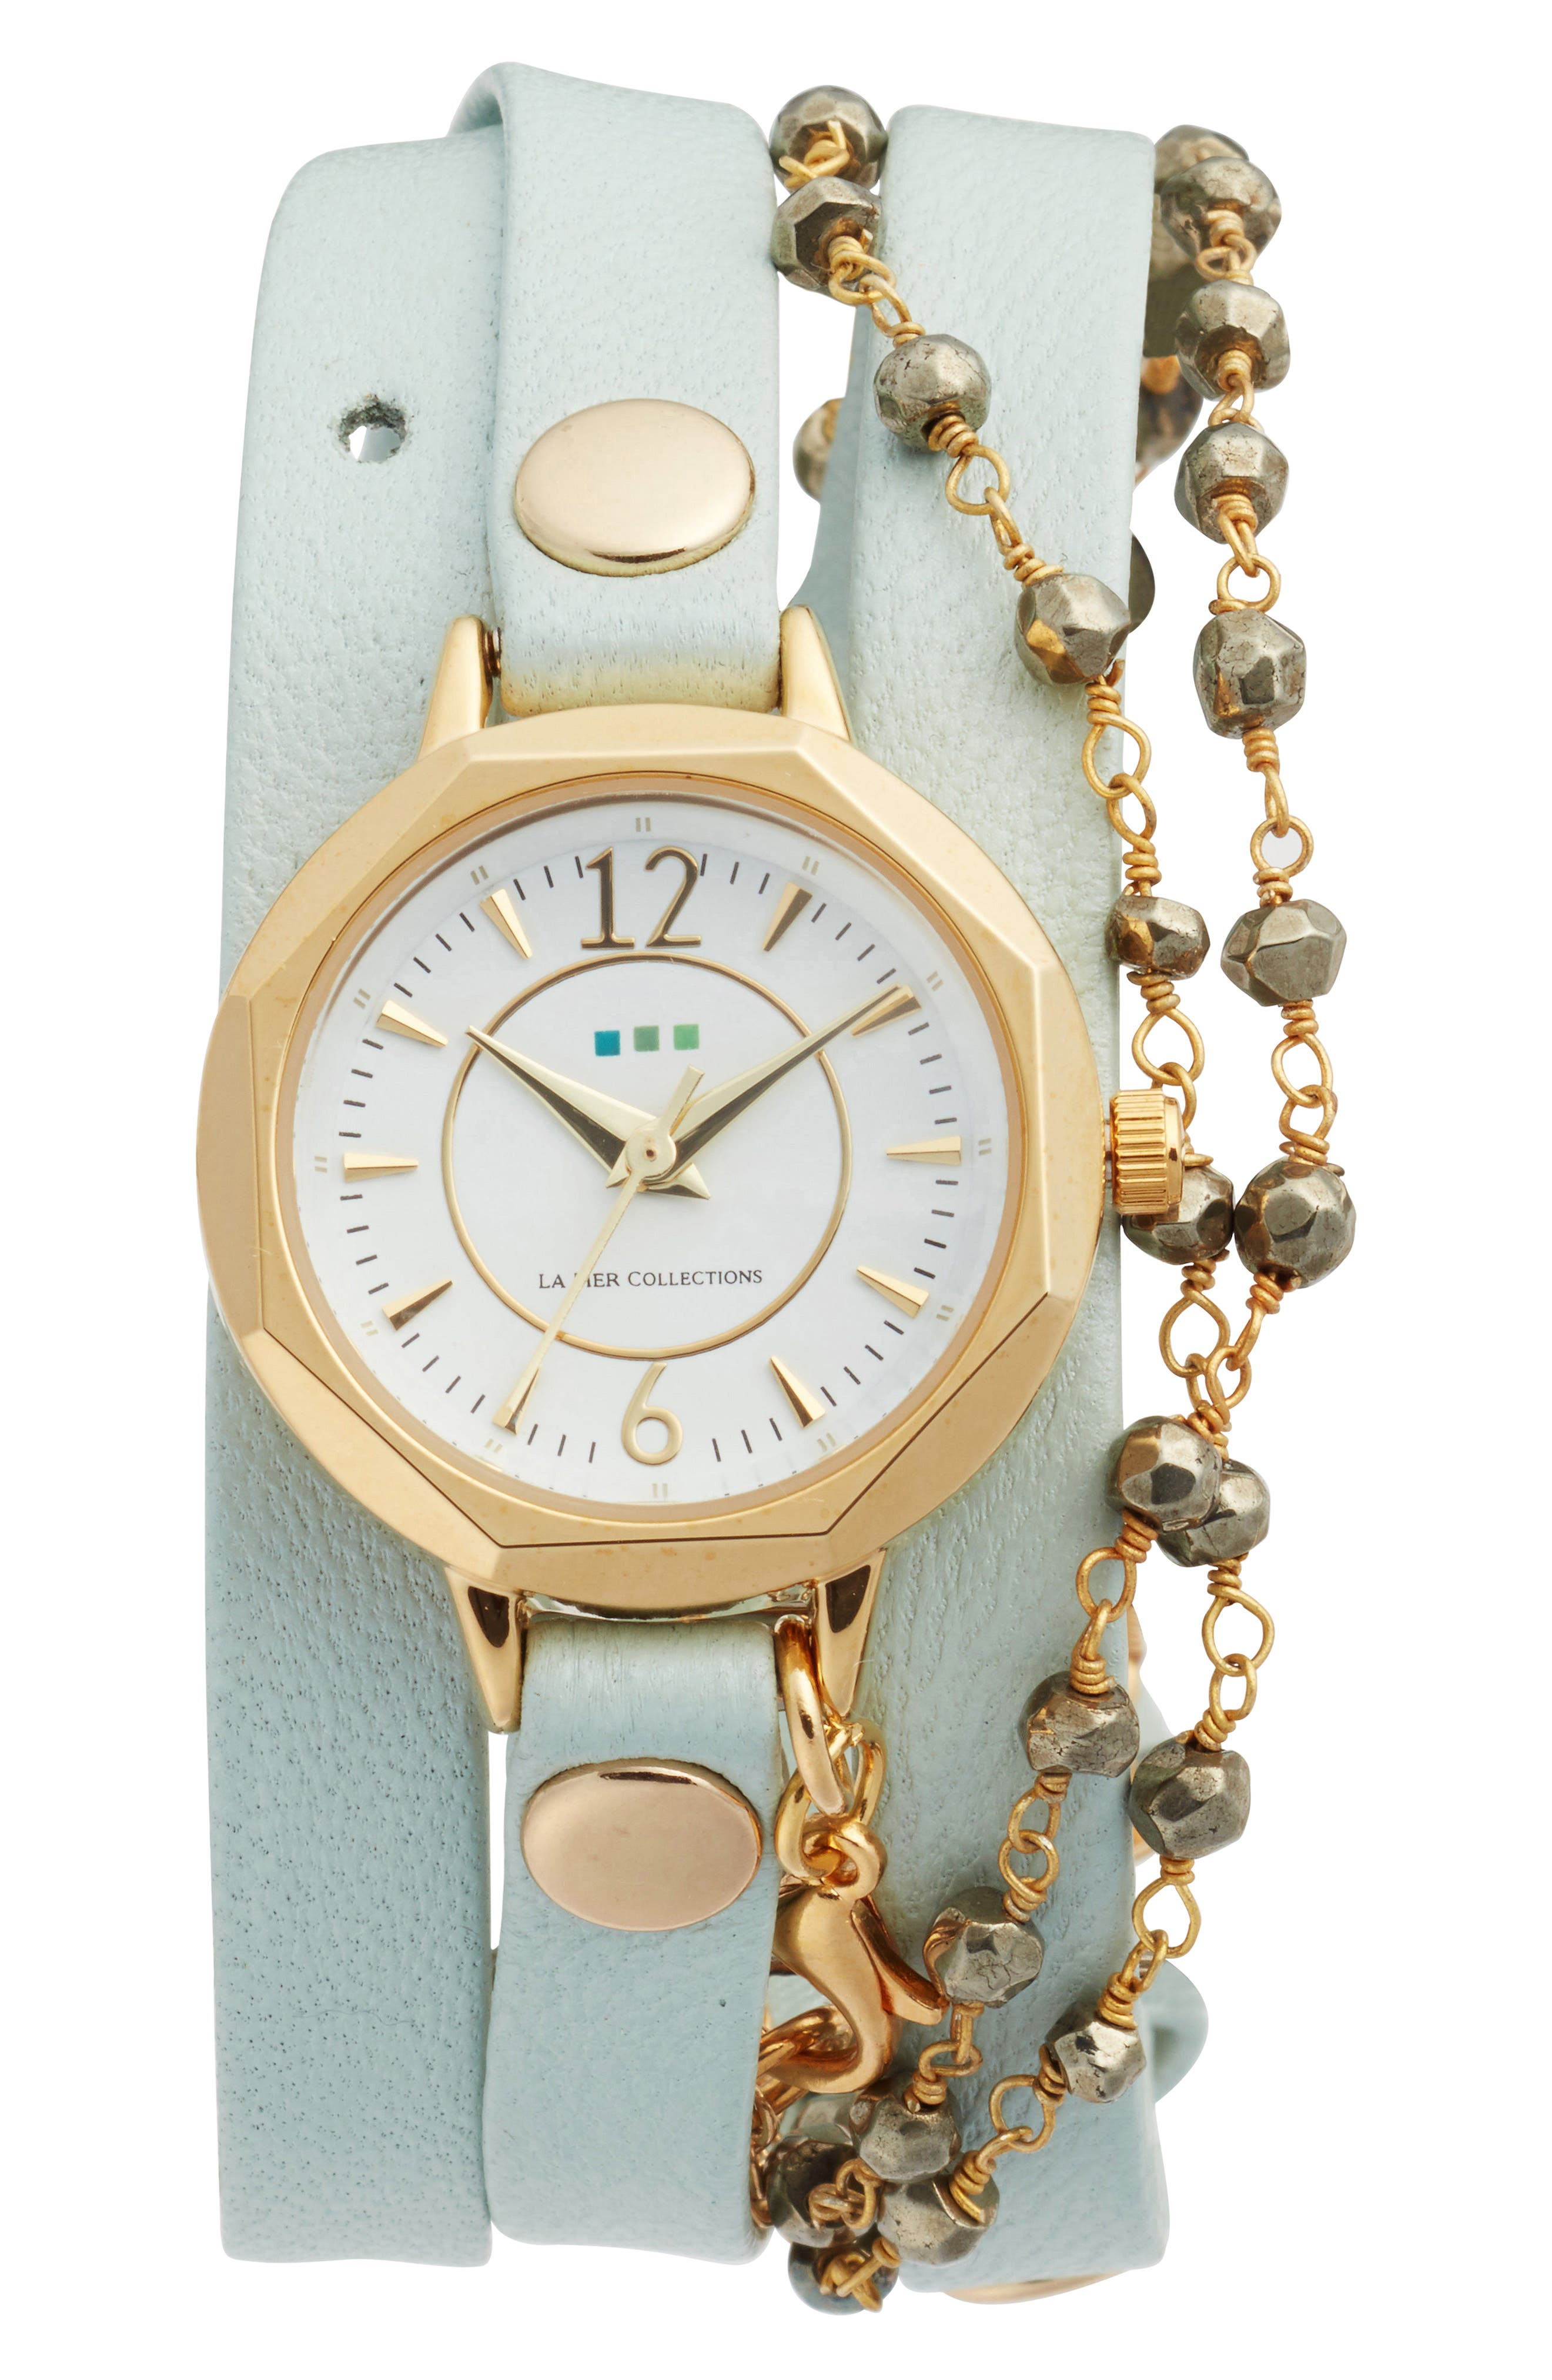 Main Image - La Mer Collections Perth Wrap Leather Strap Watch, 22mm